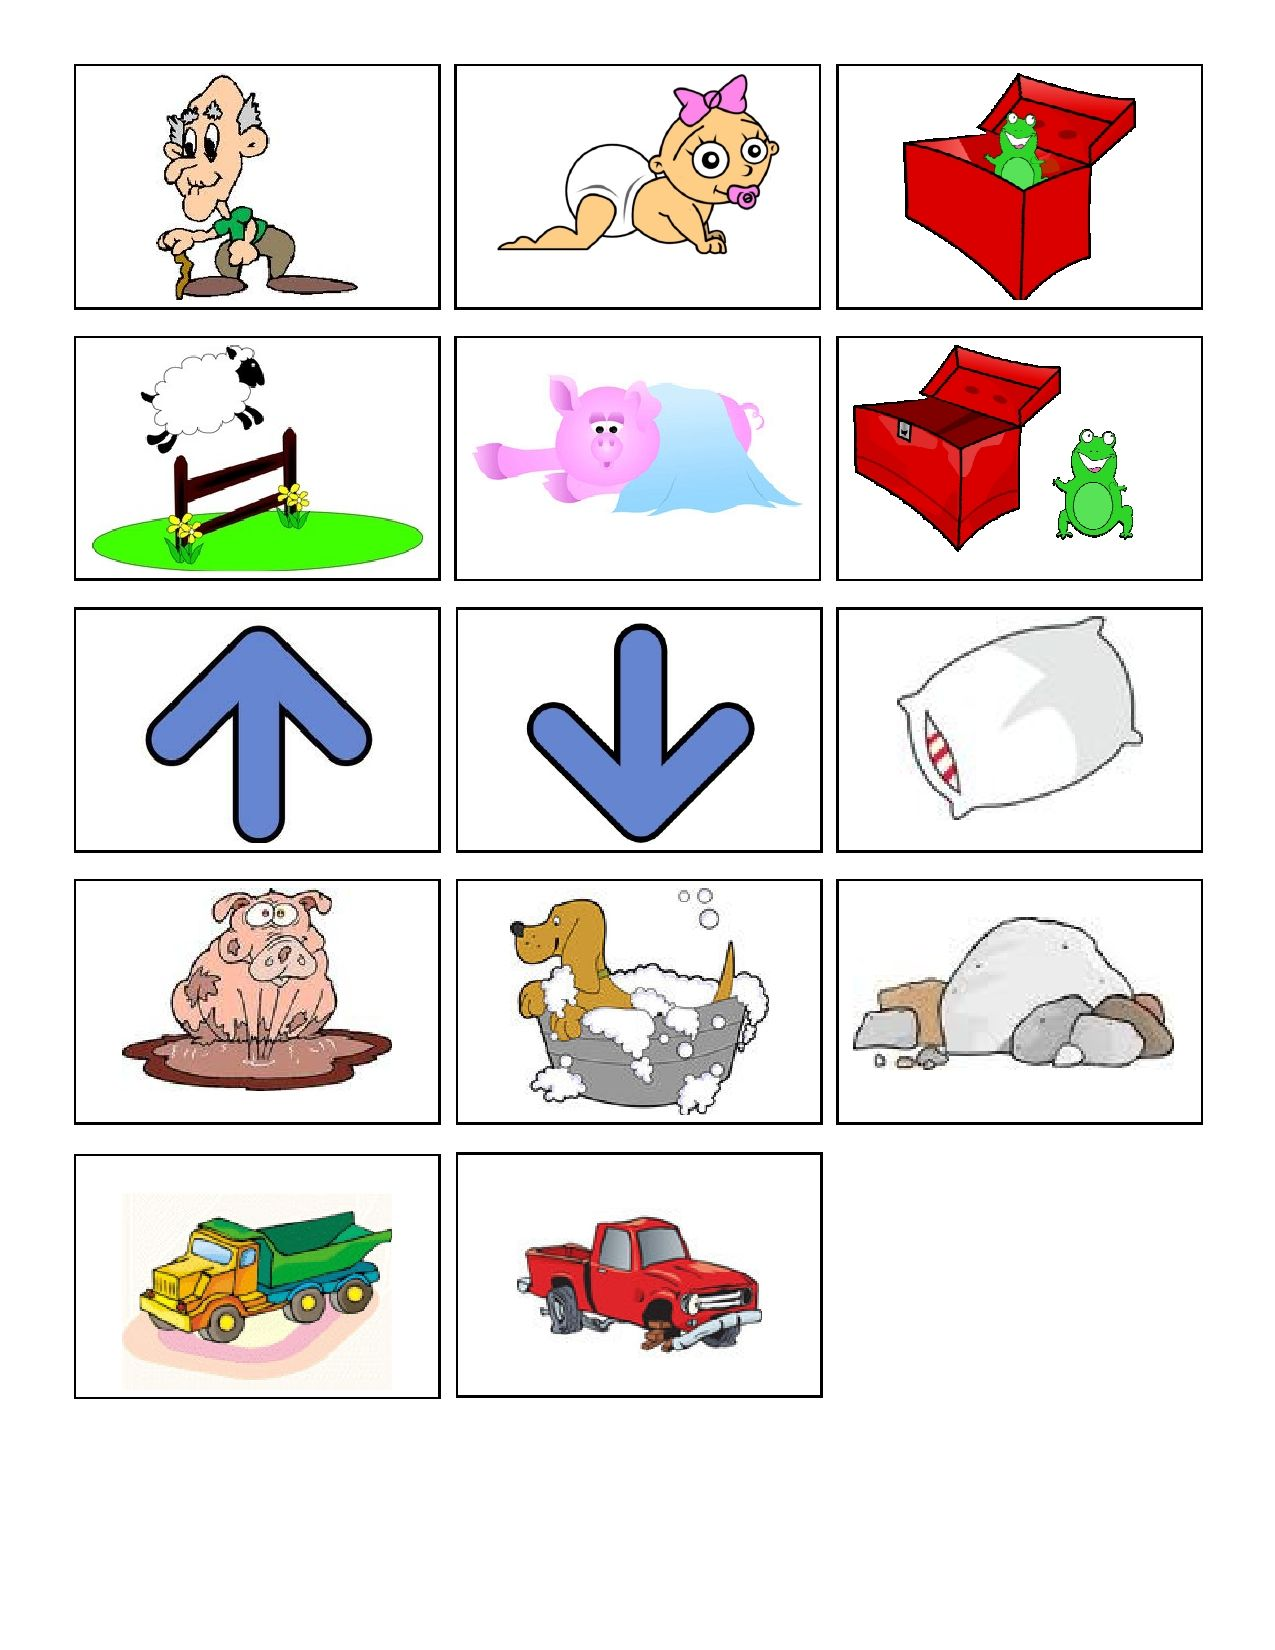 The Opposite Game Is A Fun Activity For Preschoolers To